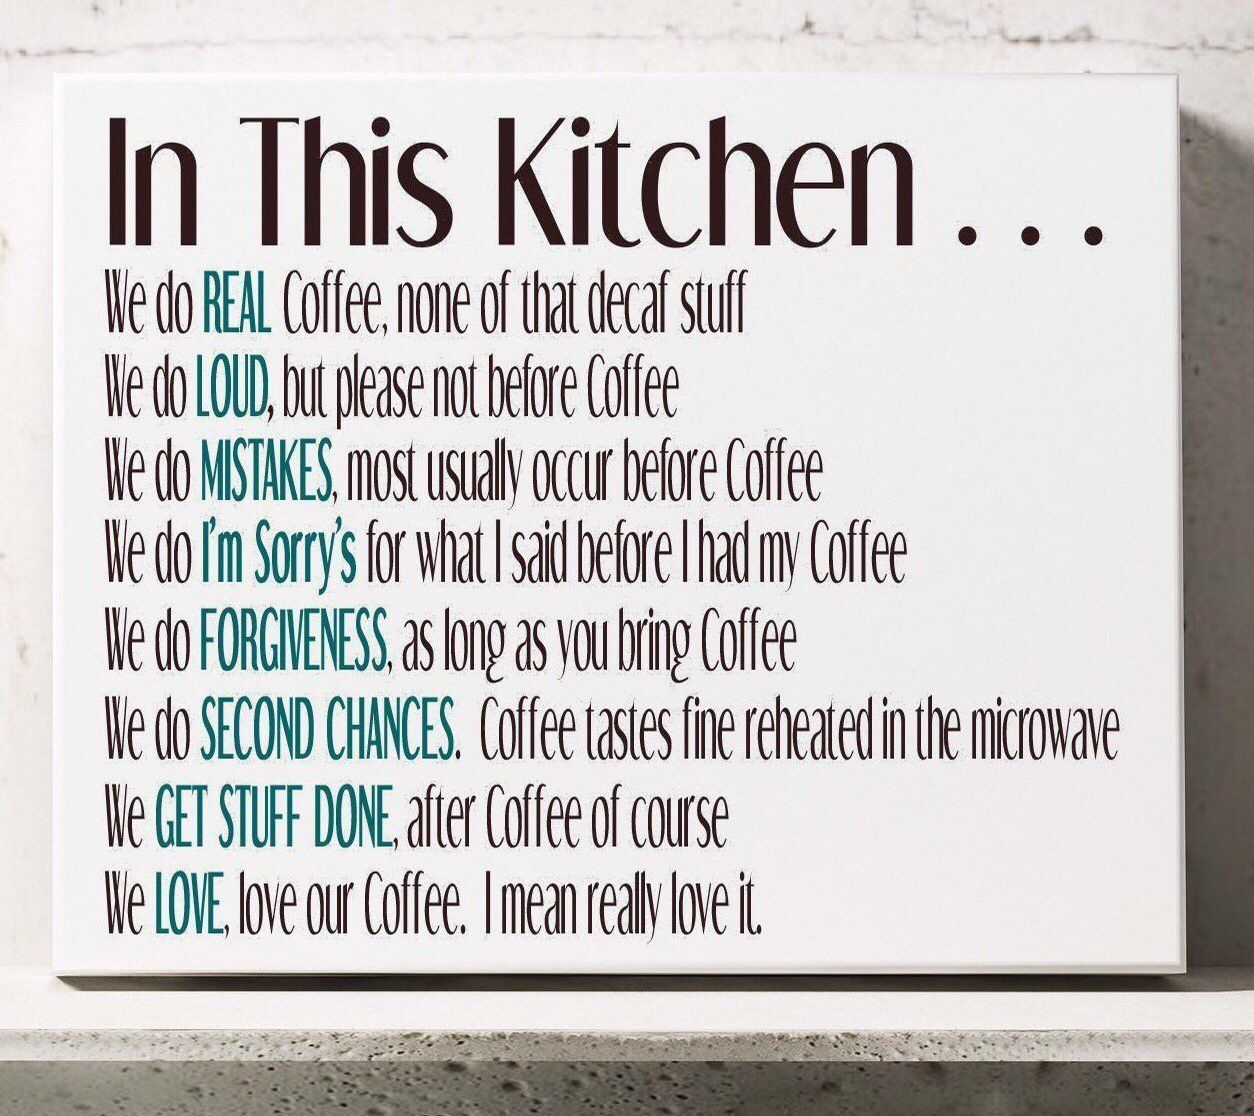 Kitchen Rules Canvas All About Coffee House Rules Funny Coffee In This House We In This Kitchen Coffee Love Kitchen Rules House Rules Kitchen Rules Sign